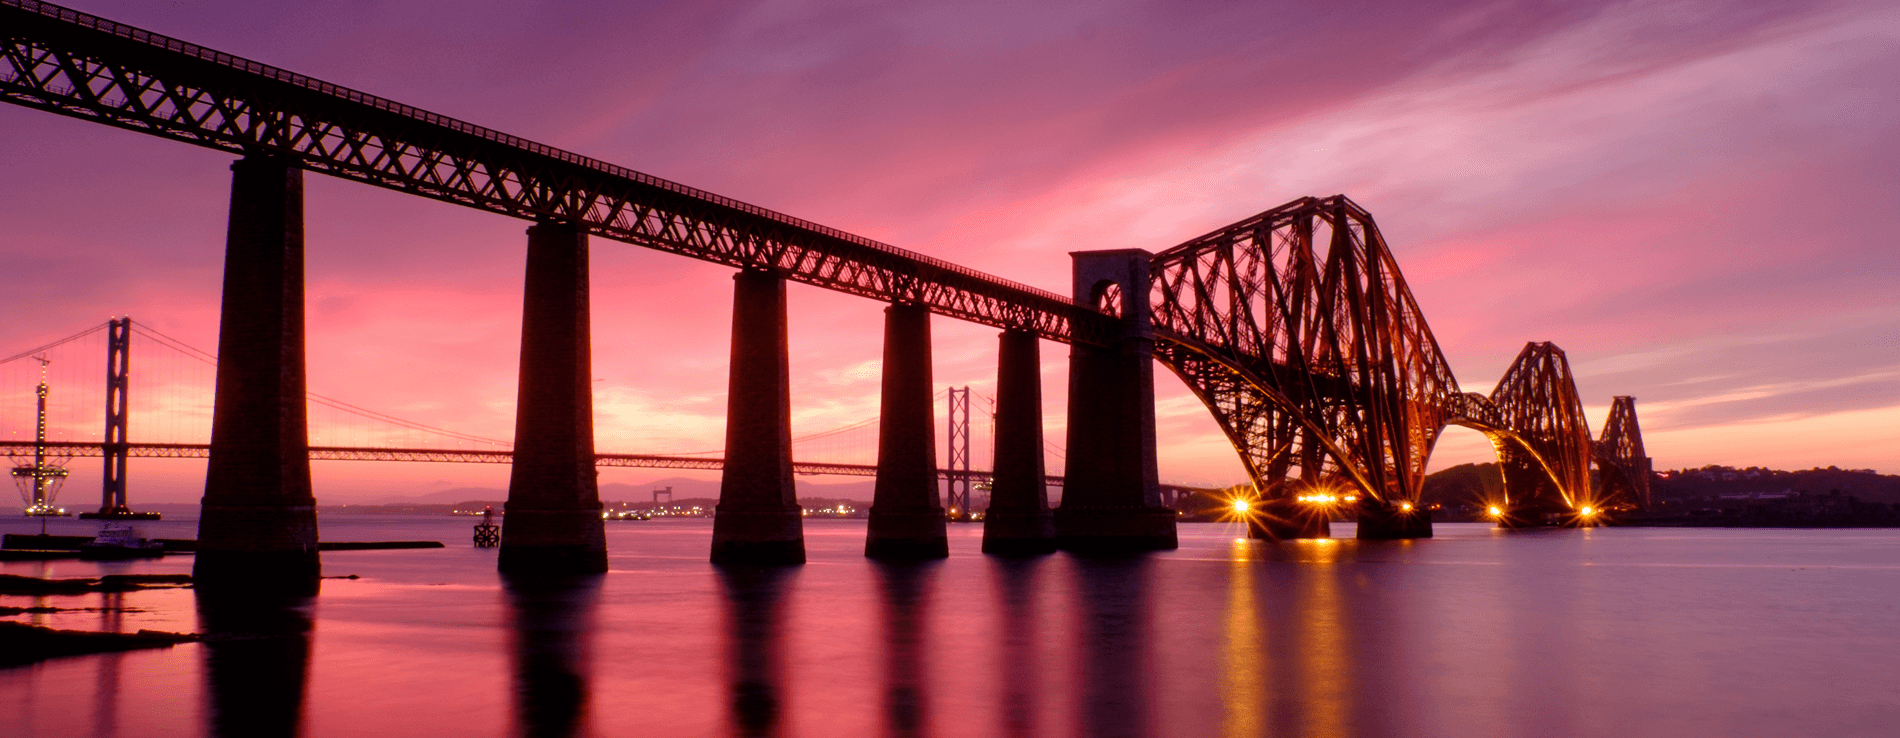 Forth Bridge  – © Steven Hume – stevenhume@gmail.com